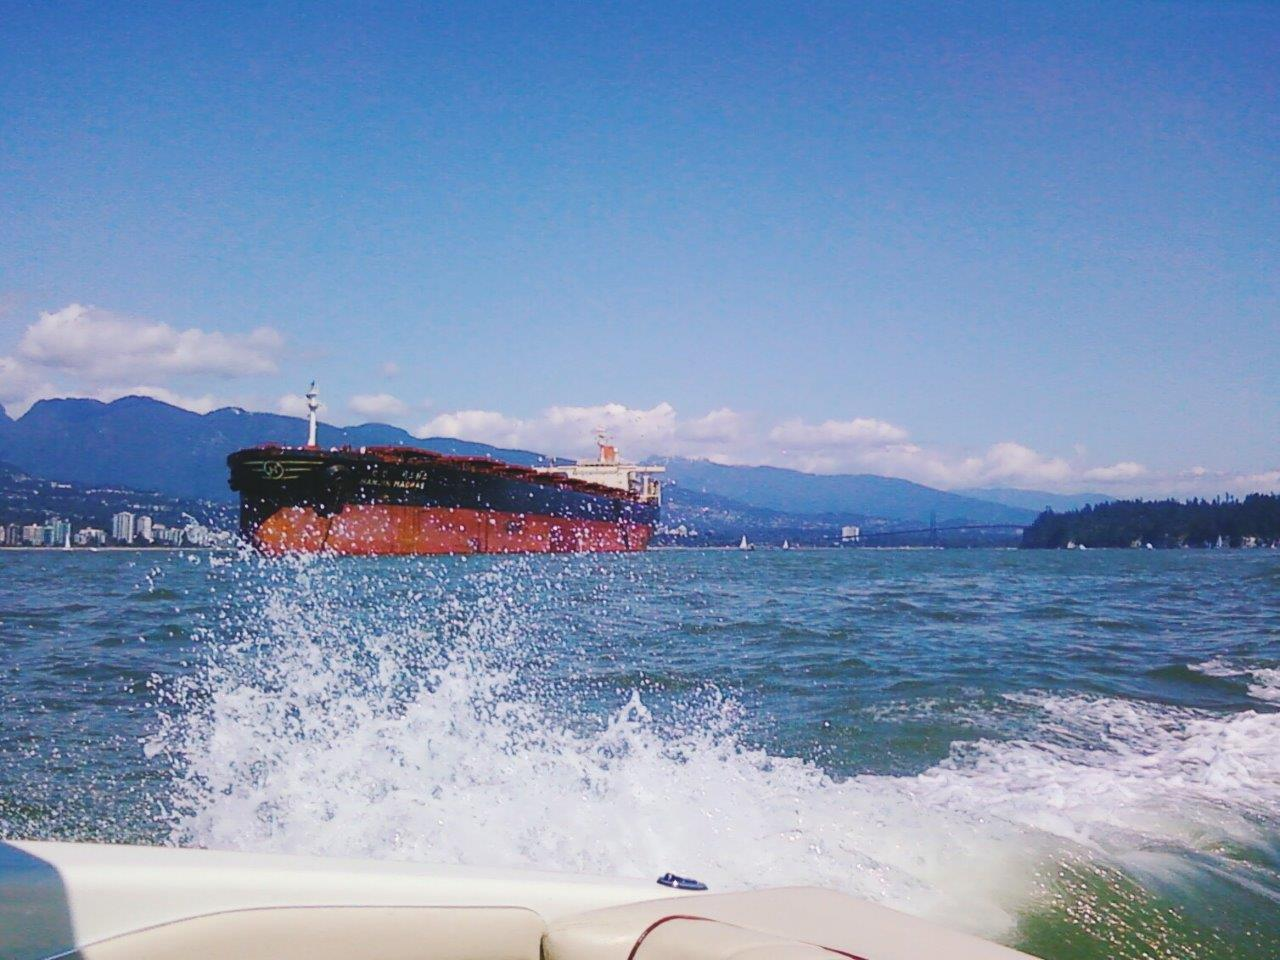 Boating on Vancouver Harbour